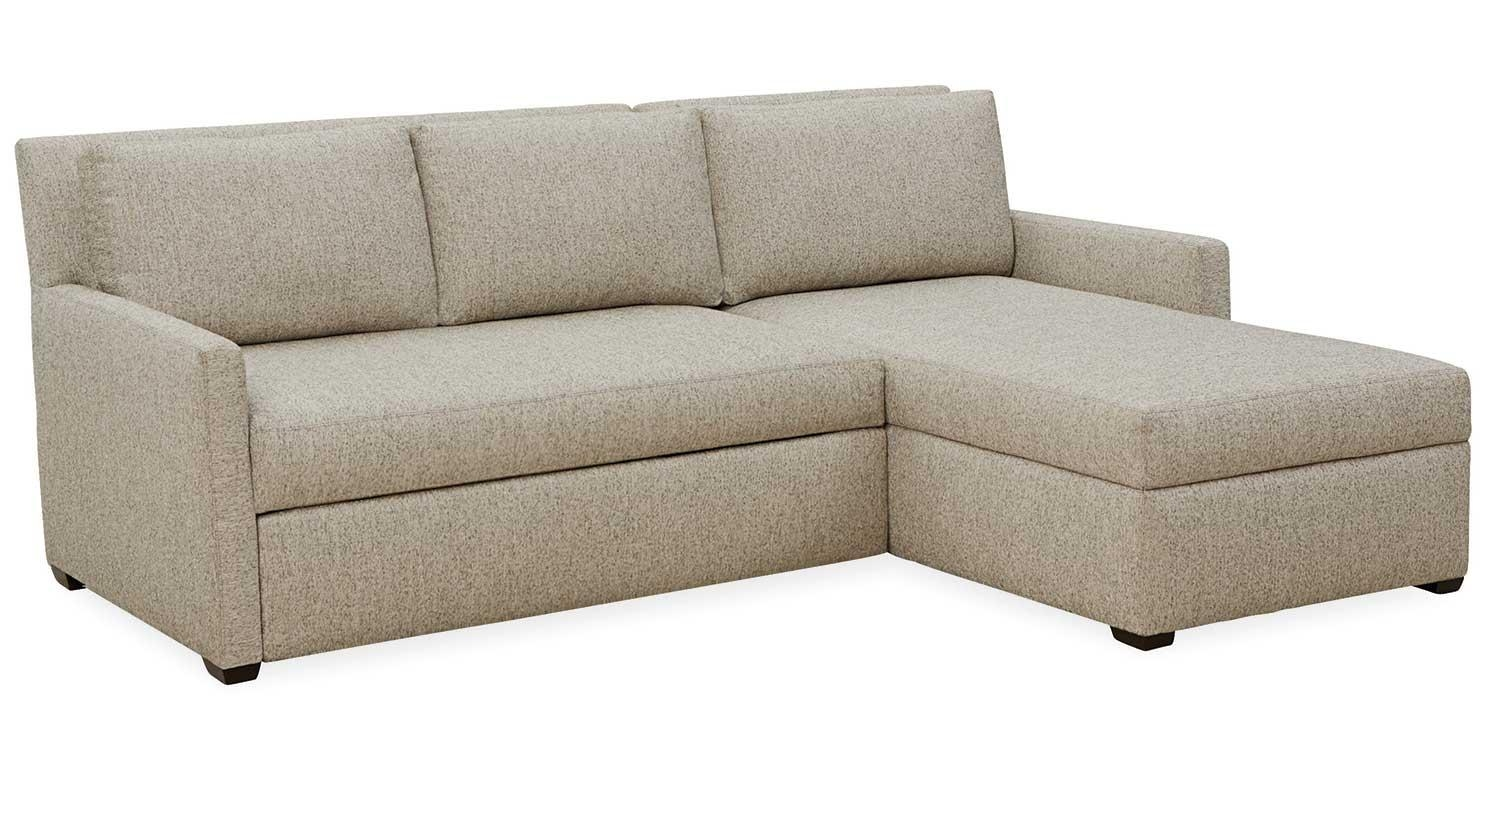 Circle Furniture – Sleeper Sofa | Sectional Sleepers | Circle Intended For Austin Sleeper Sofas (Image 3 of 20)